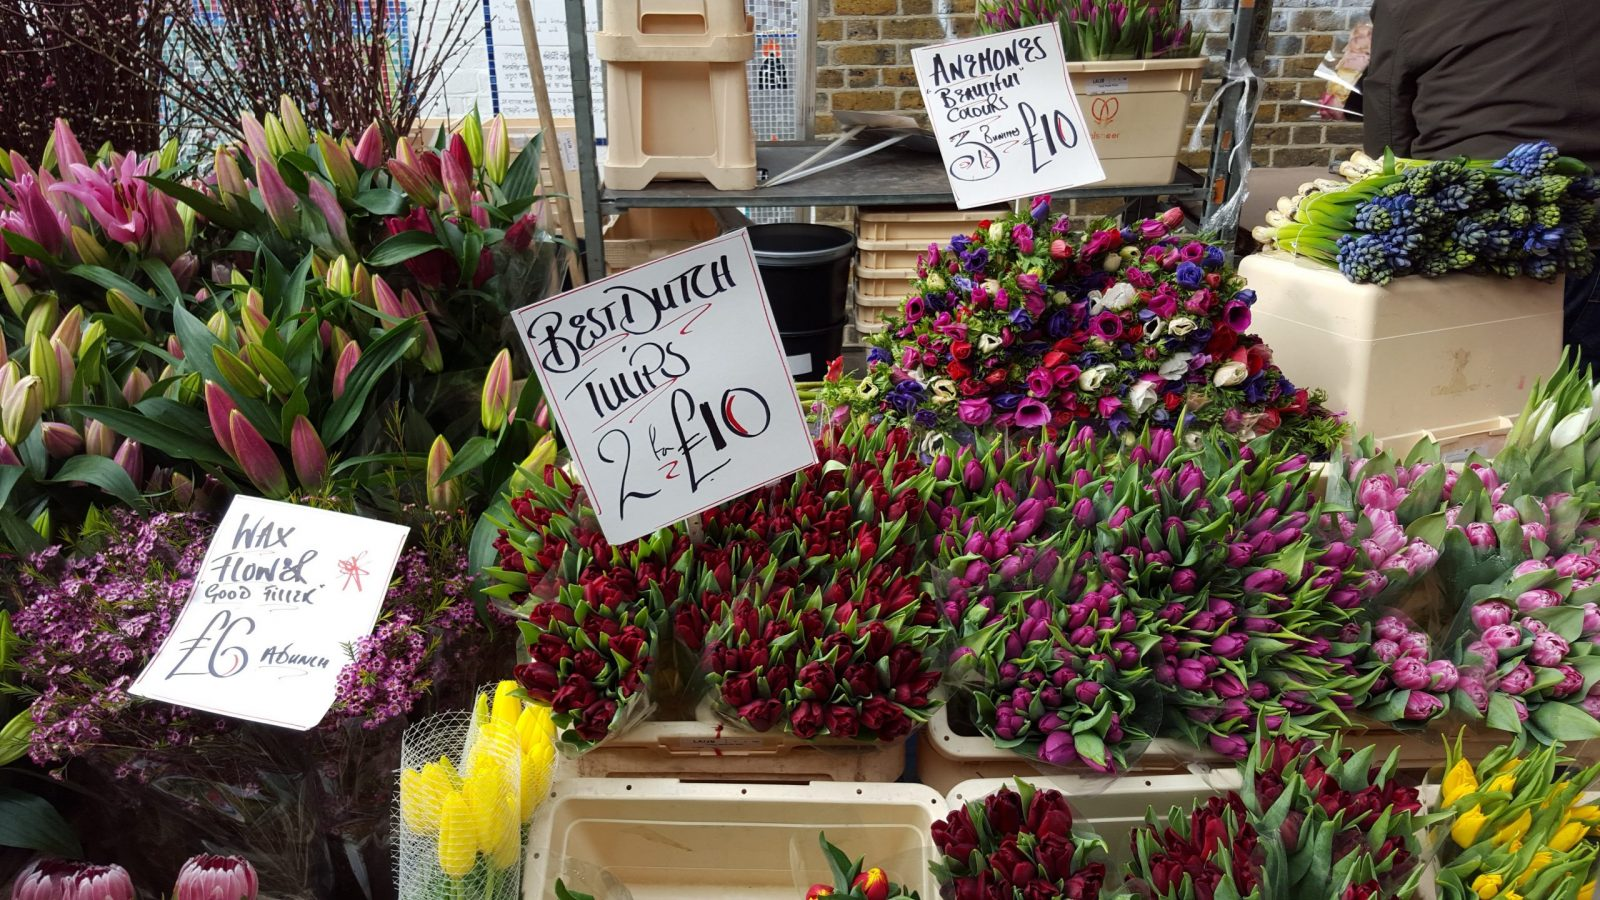 Columbia Road Flower Market prices